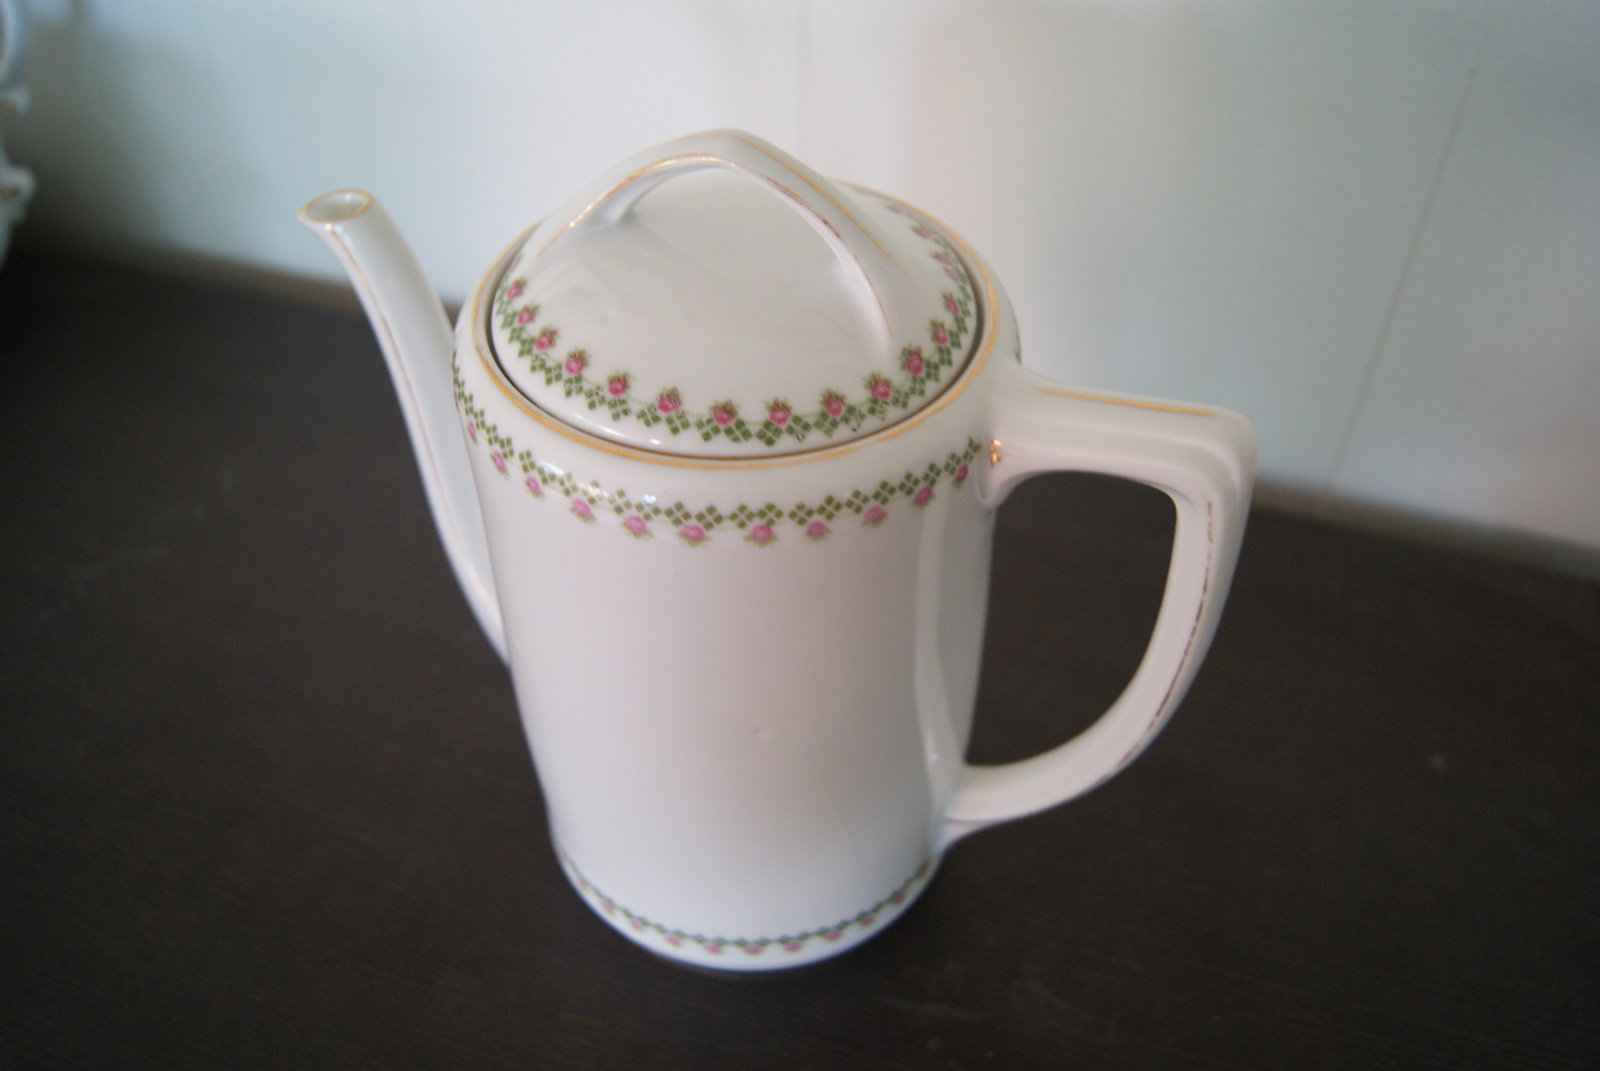 Porsgrund Olaf coffee pot with red or pink flowers and green cubes